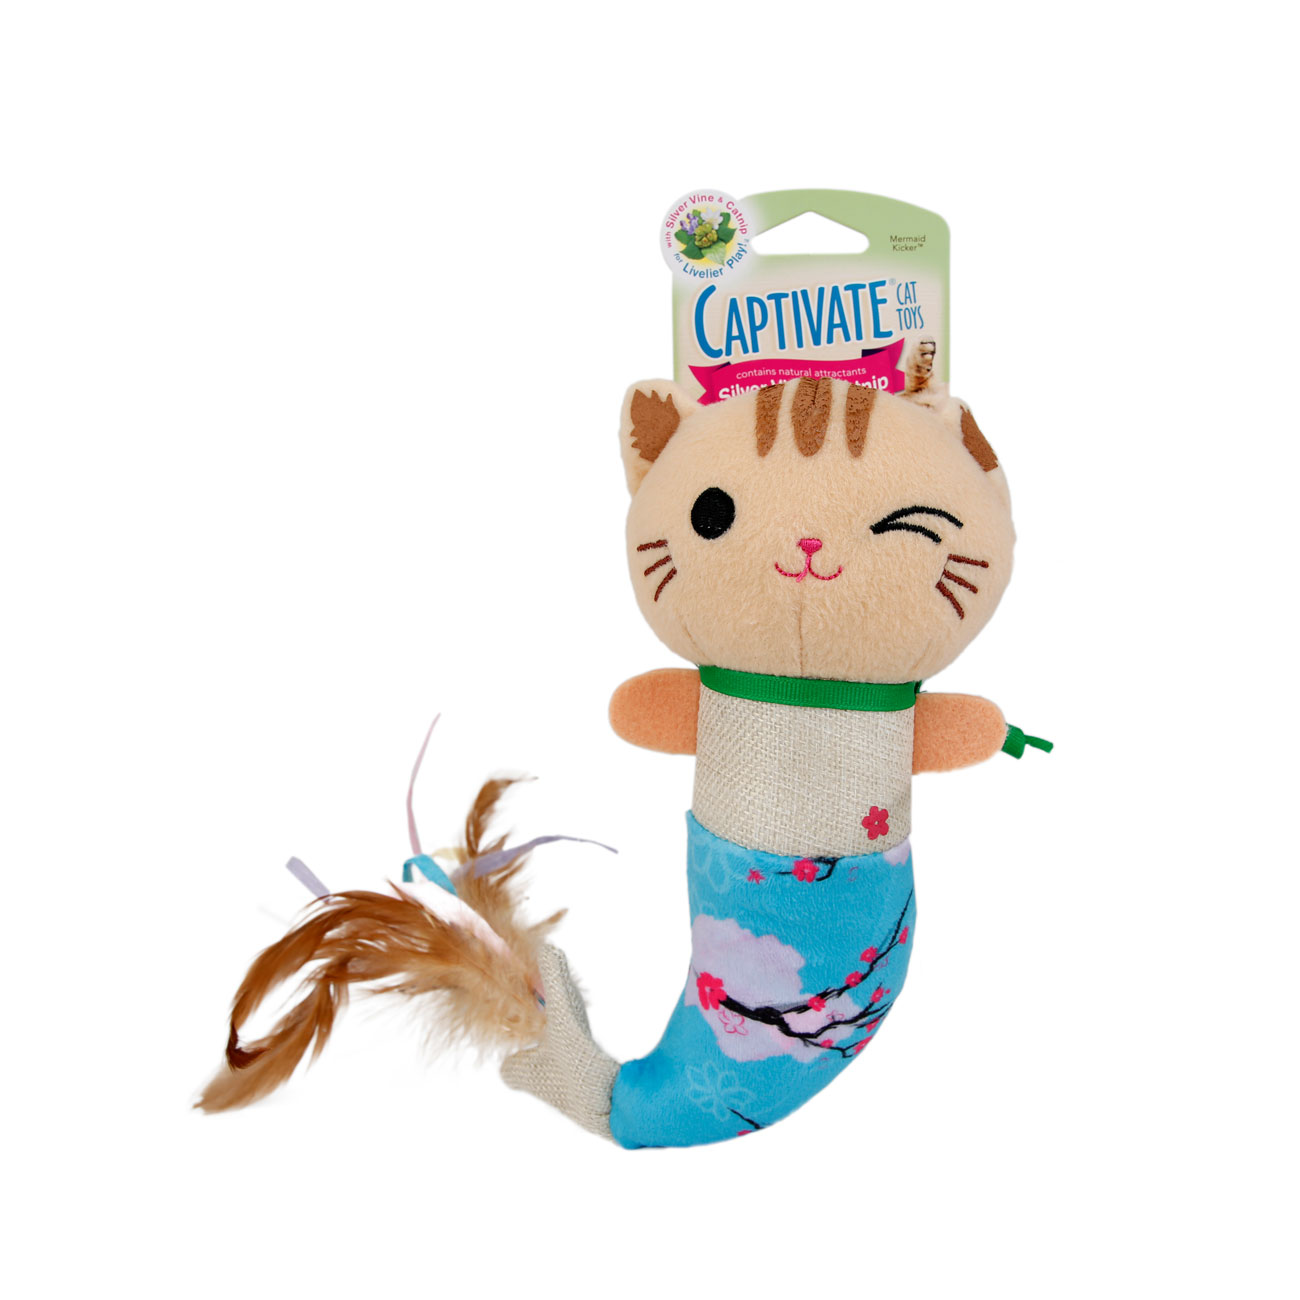 Hartz Captivate mermaid kicker cat toy. Contains silver vine and catnip. Front of package. Hartz SKU#3270011250.